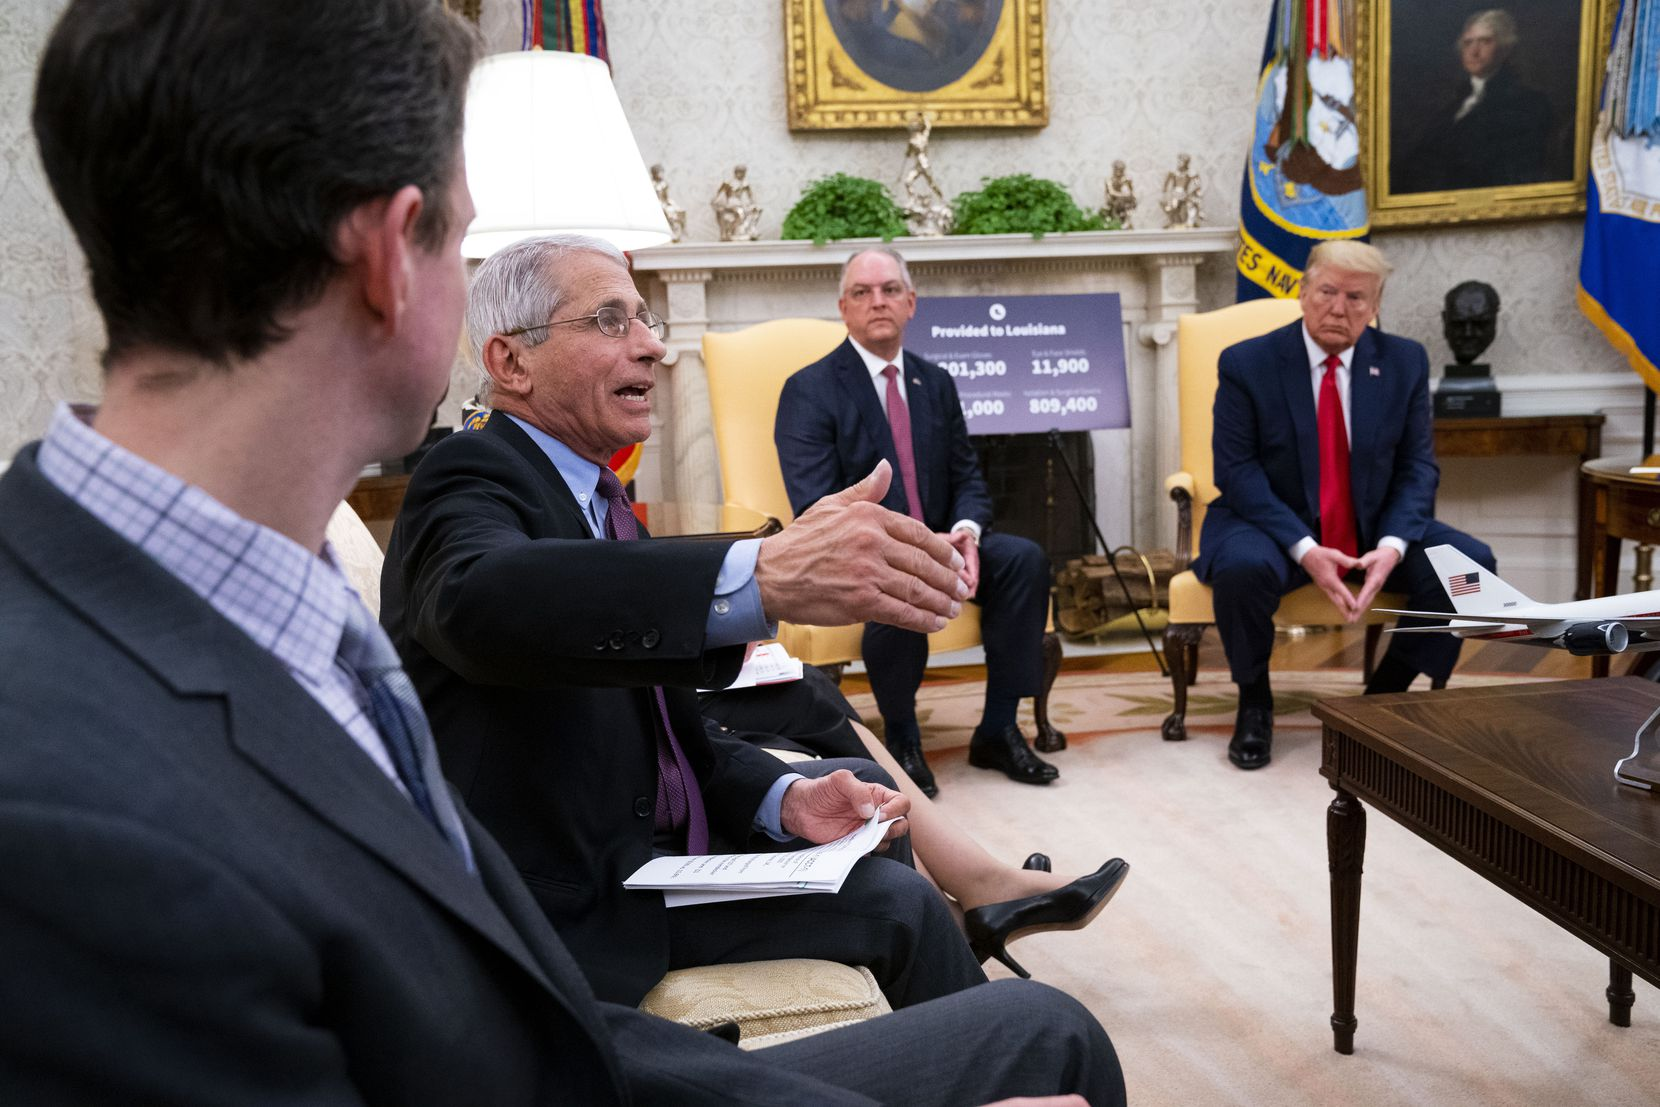 """WASHINGTON, DC - APRIL 29:  Dr. Anthony Fauci (2nd L), Director of the National Institute of Allergy and Infectious Diseases, discusses early results of testing the drug Remdesivir during a meeting with U.S. President Donald Trump and Louisiana Gov. John Bel Edwards (2nd R) in the Oval Office of the White House April 29, 2020 in Washington, DC. Fauci said the early testing results were """"quite good news""""."""